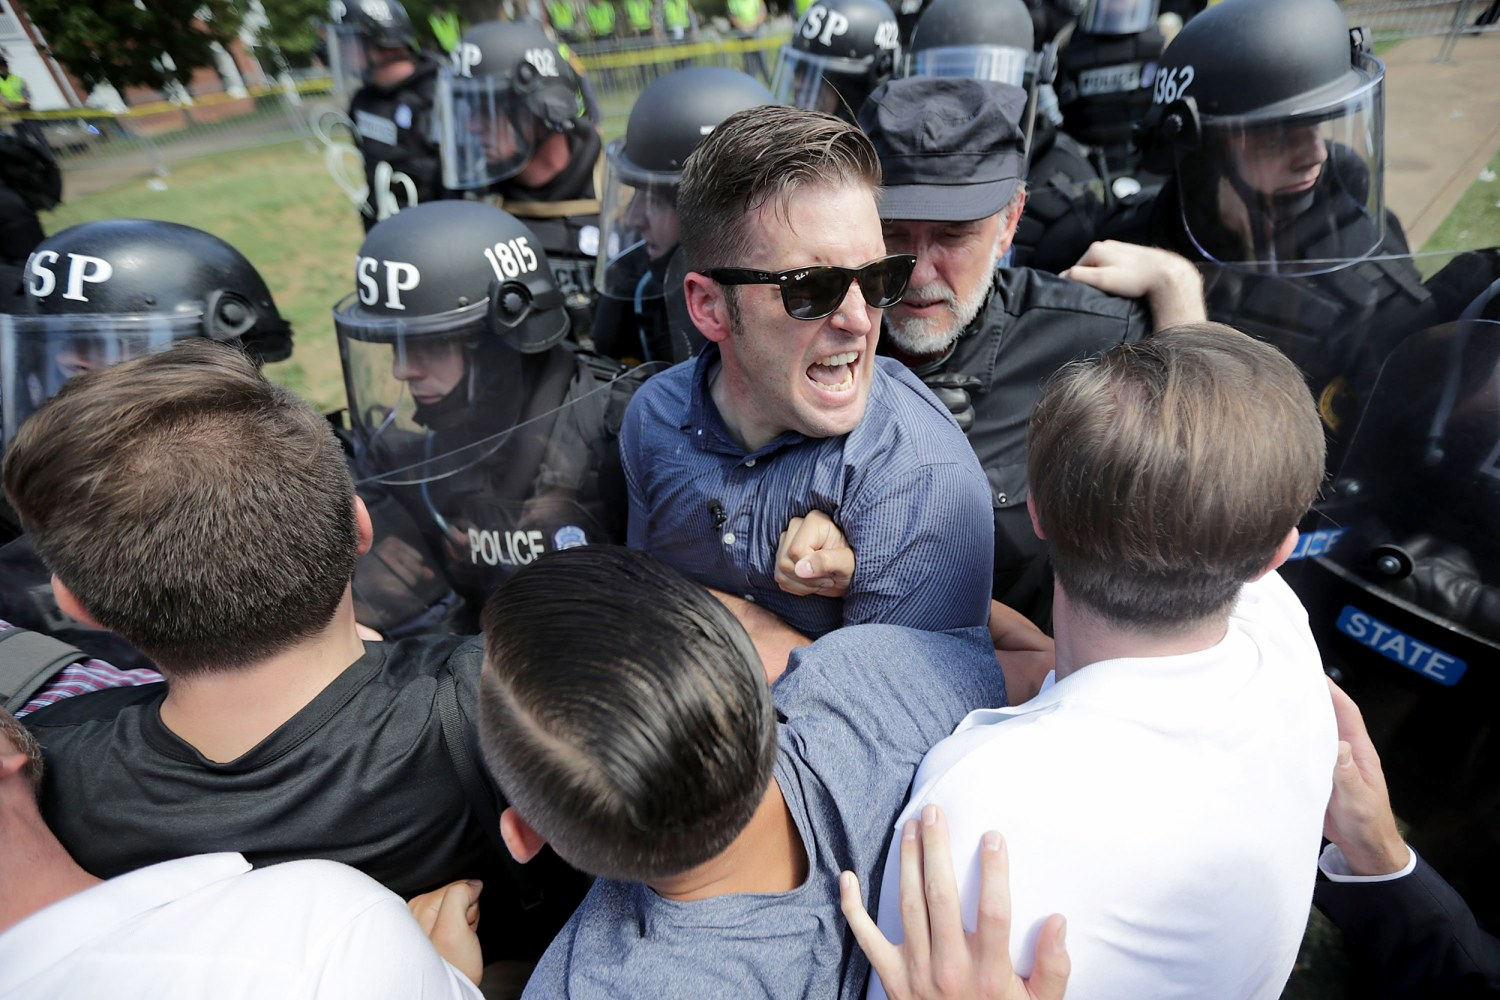 Richard Spencer wanted a platform. He's faced protesters instead